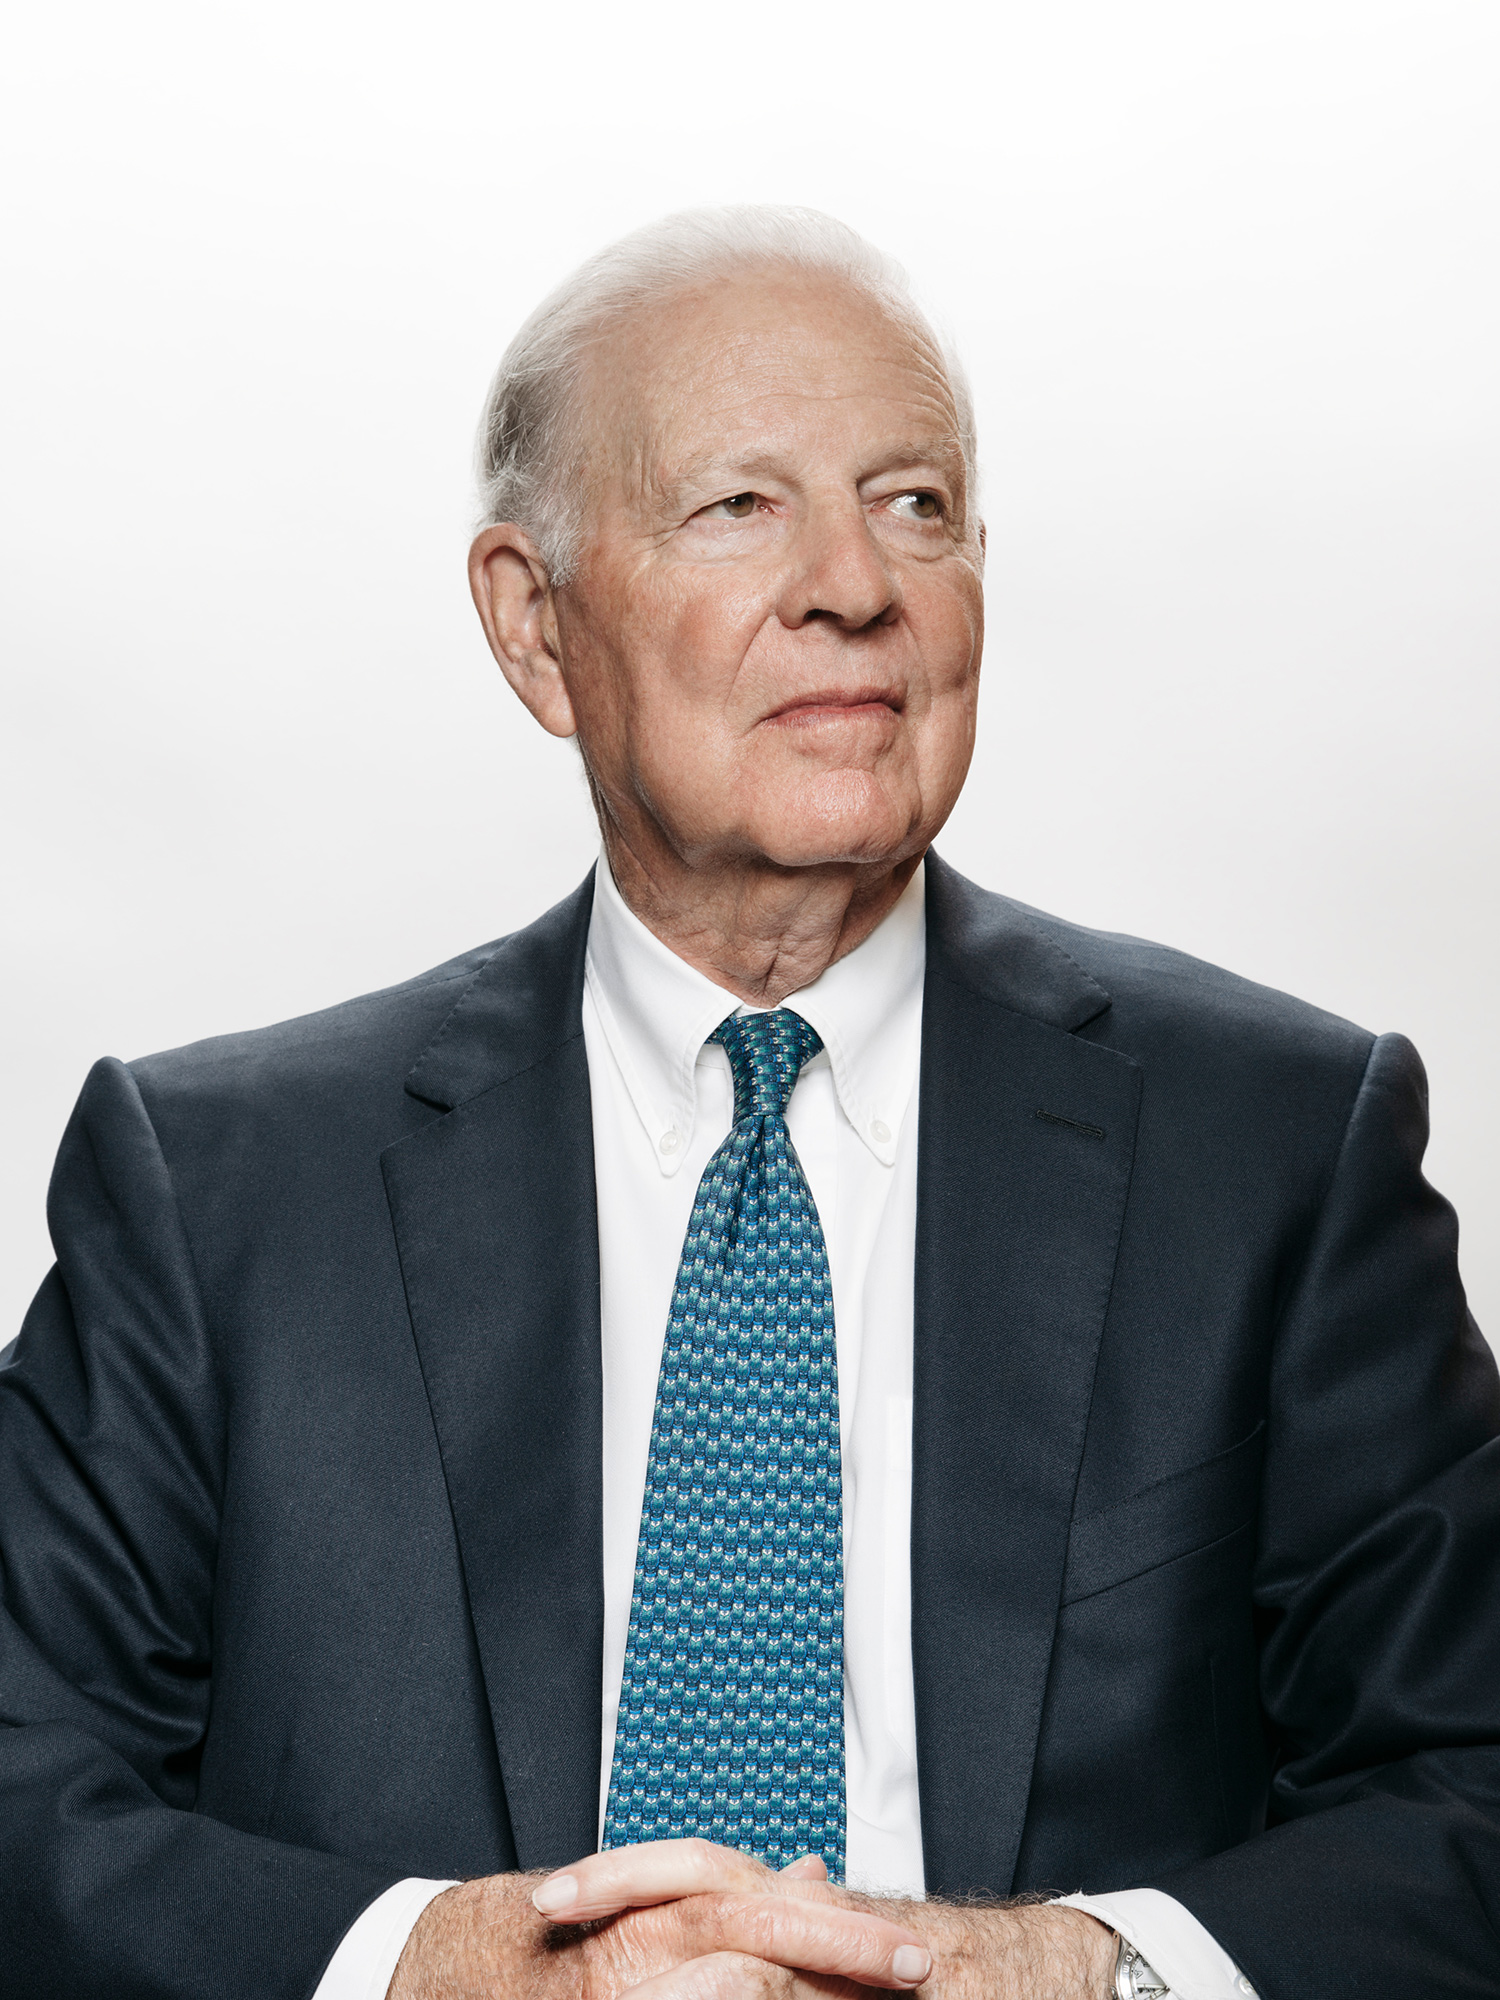 James Baker, former US Secretary of State, photographed in his Houston, Texas office by Houston editorial and commercial photographer, Todd Spoth.